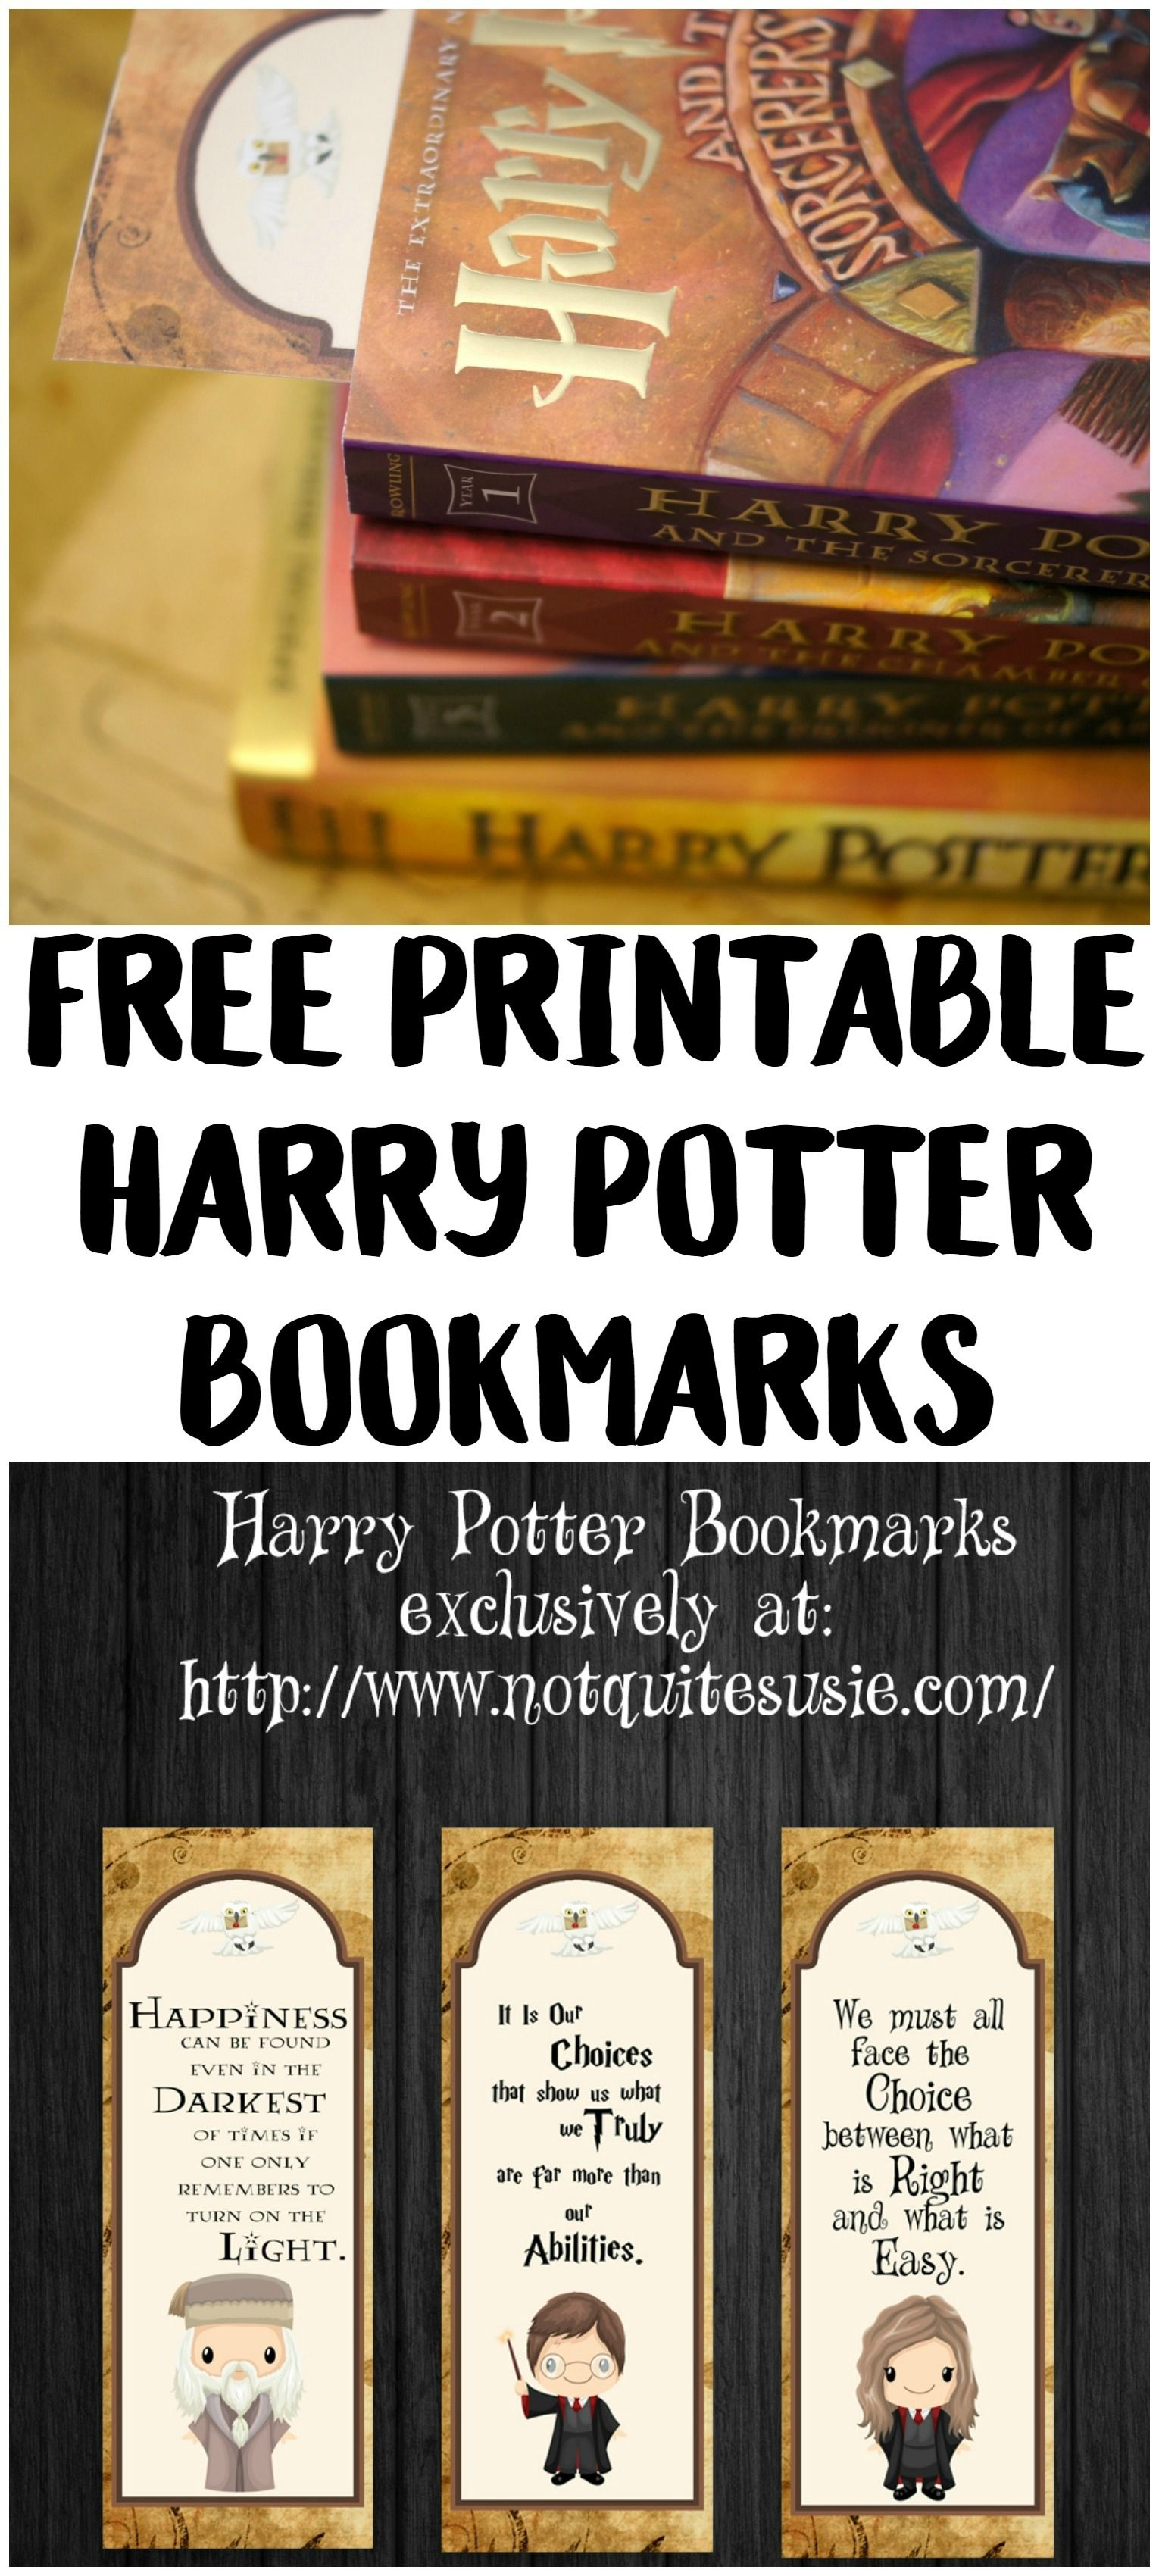 Free Printable Harry Potter Bookmarks   Harry Potter Hogwarts - Free Printable Harry Potter Pictures